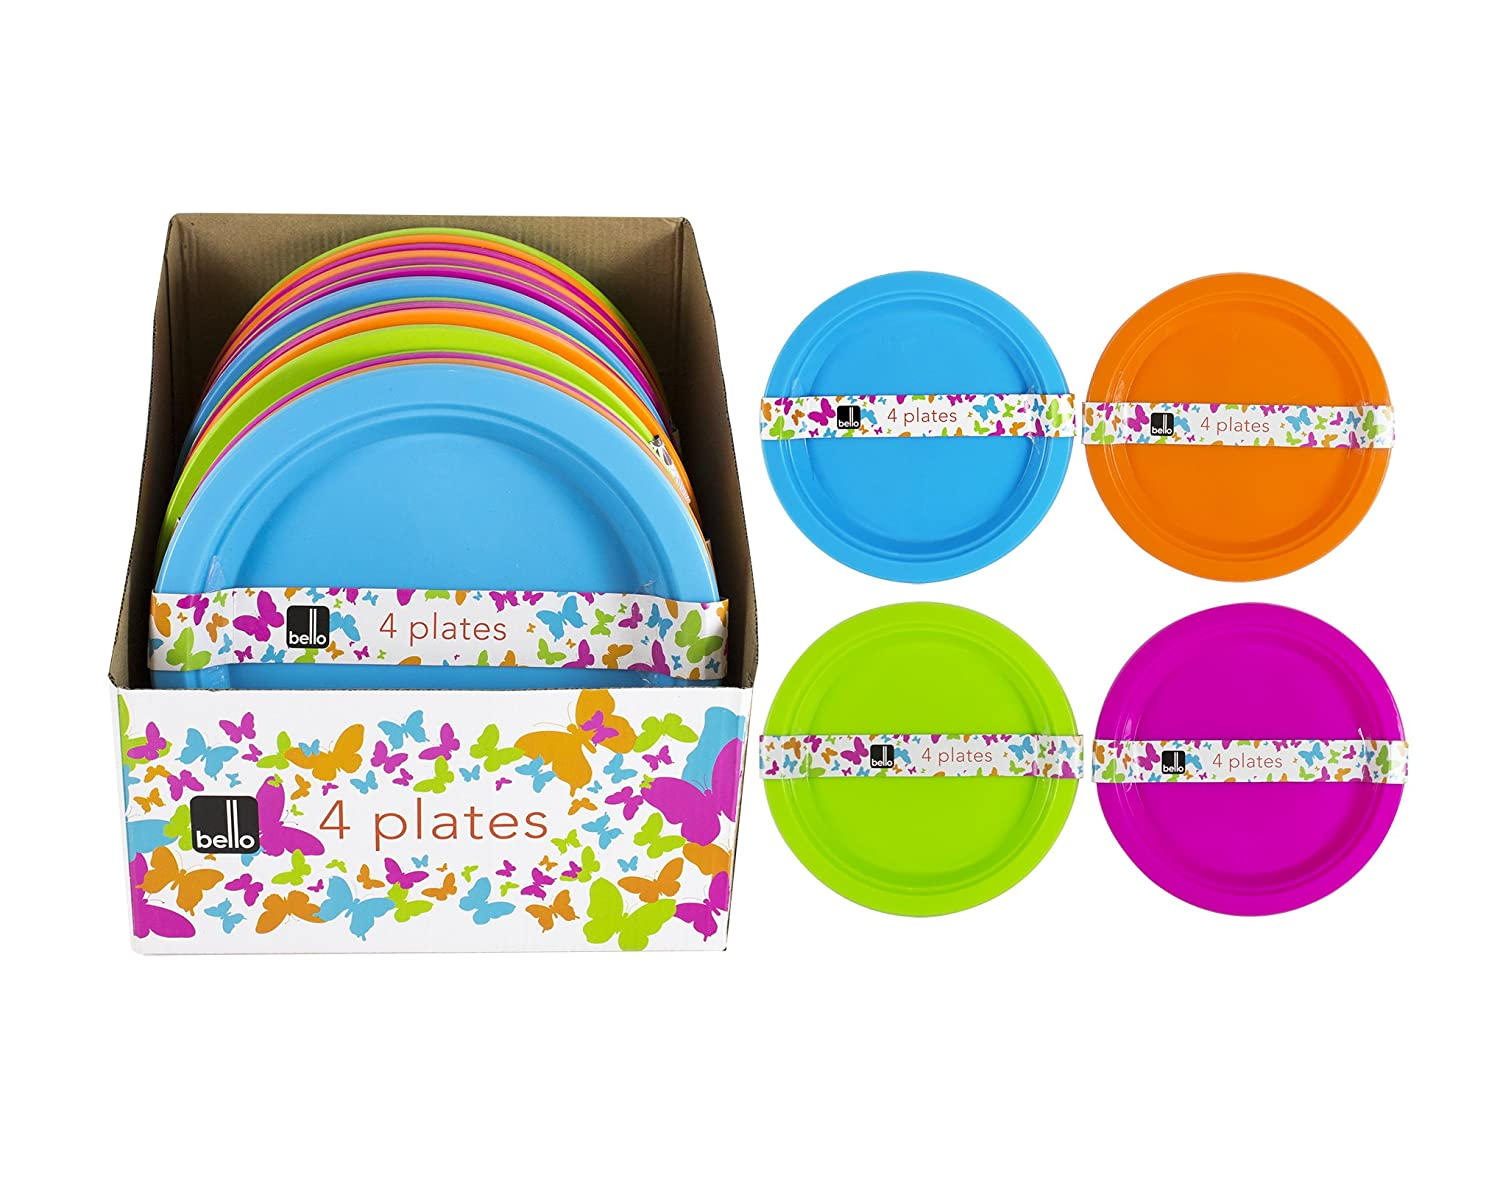 ALANNAHS ACCESSORIES 4 Reusable Plastic Picnic Party Bbq Camping Plates 4 Colour Choices 23cm